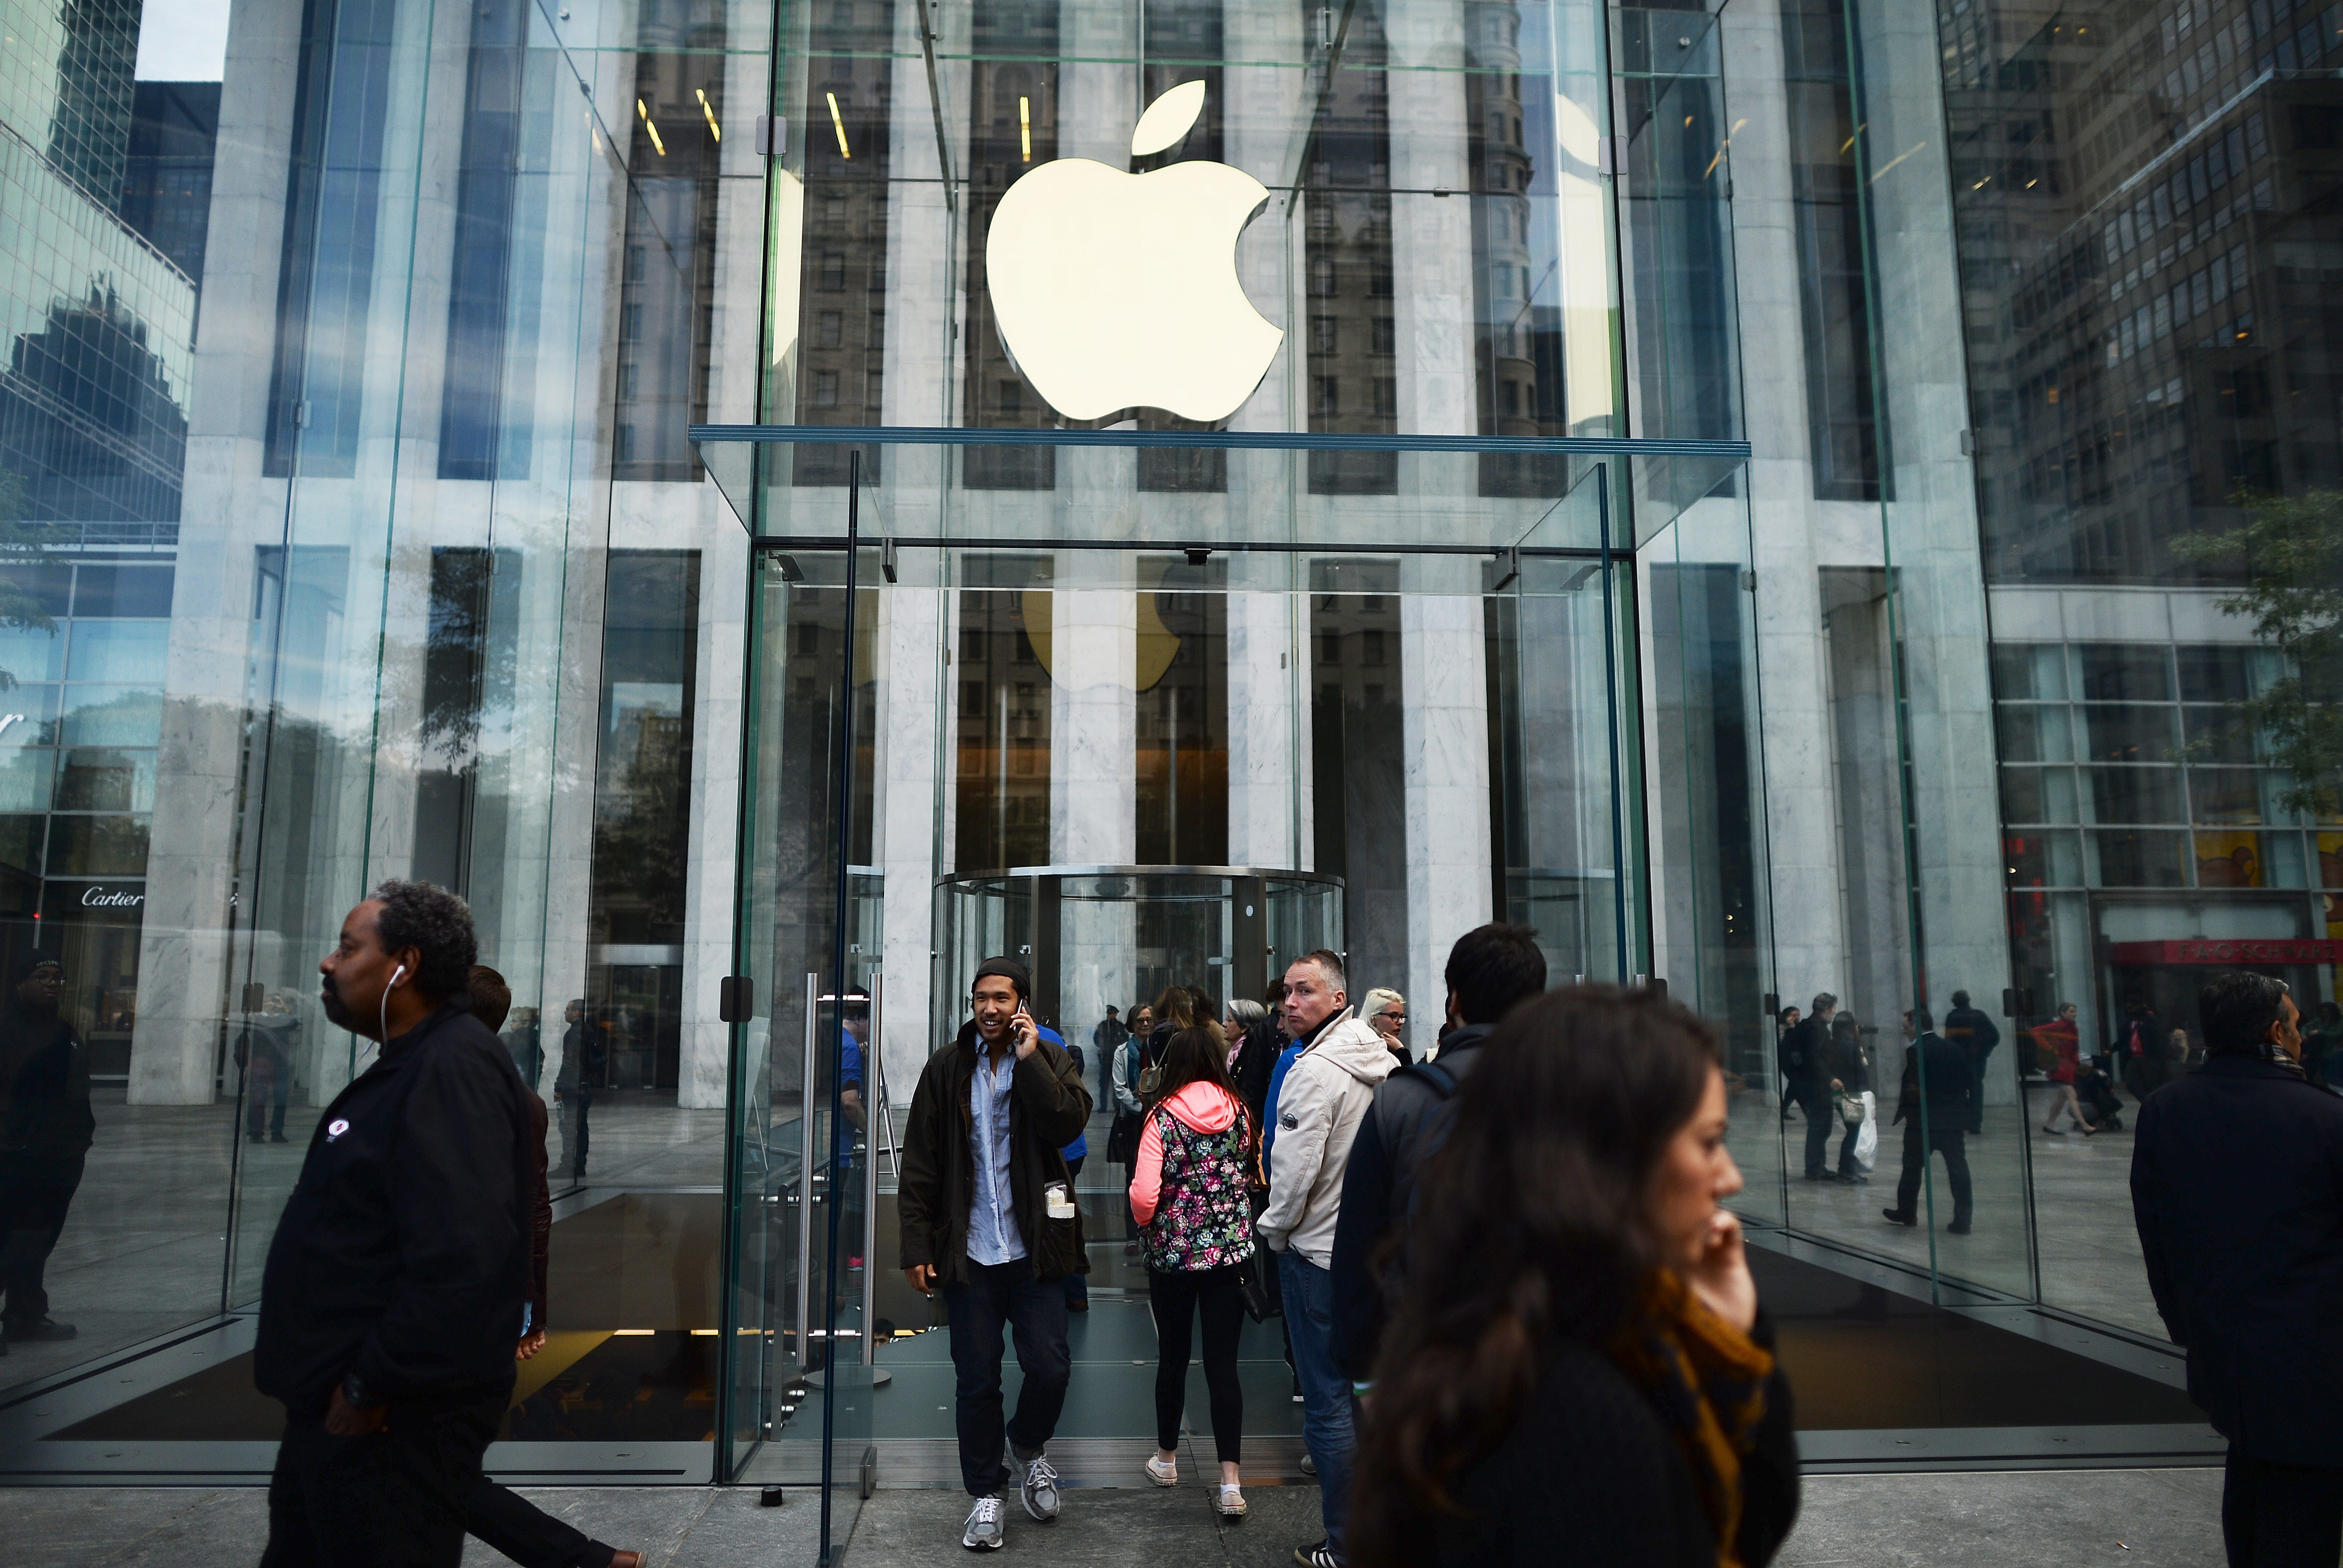 People walk past an Apple store in New York on October 20, 2014.